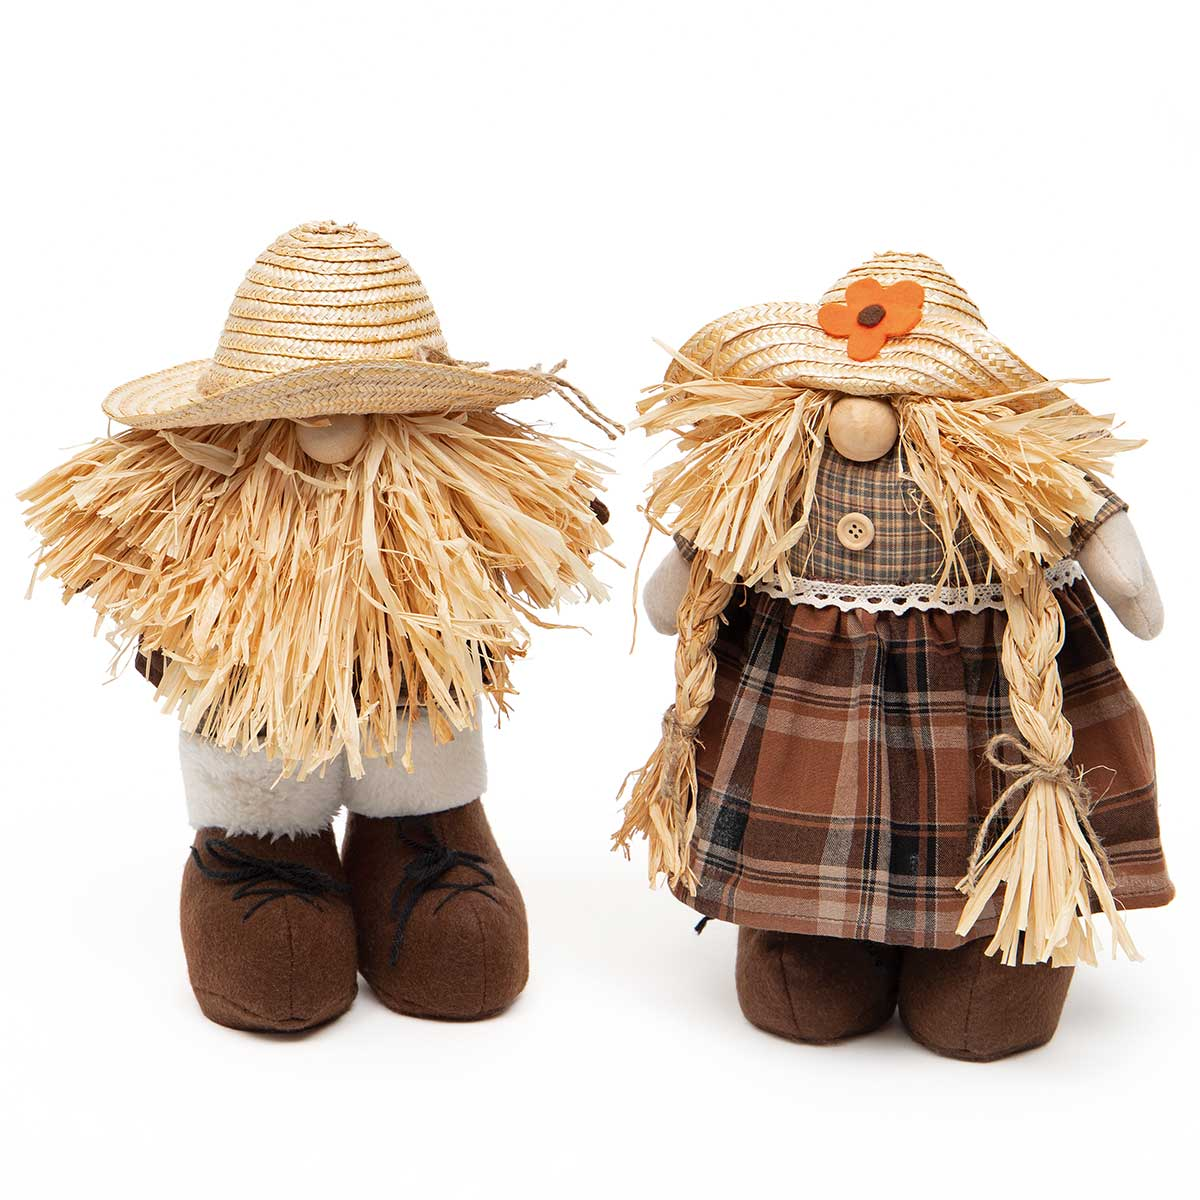 FALL FEST YOUNGINS GNOME BROWN PLAID W/STRAW HAT, WOOD